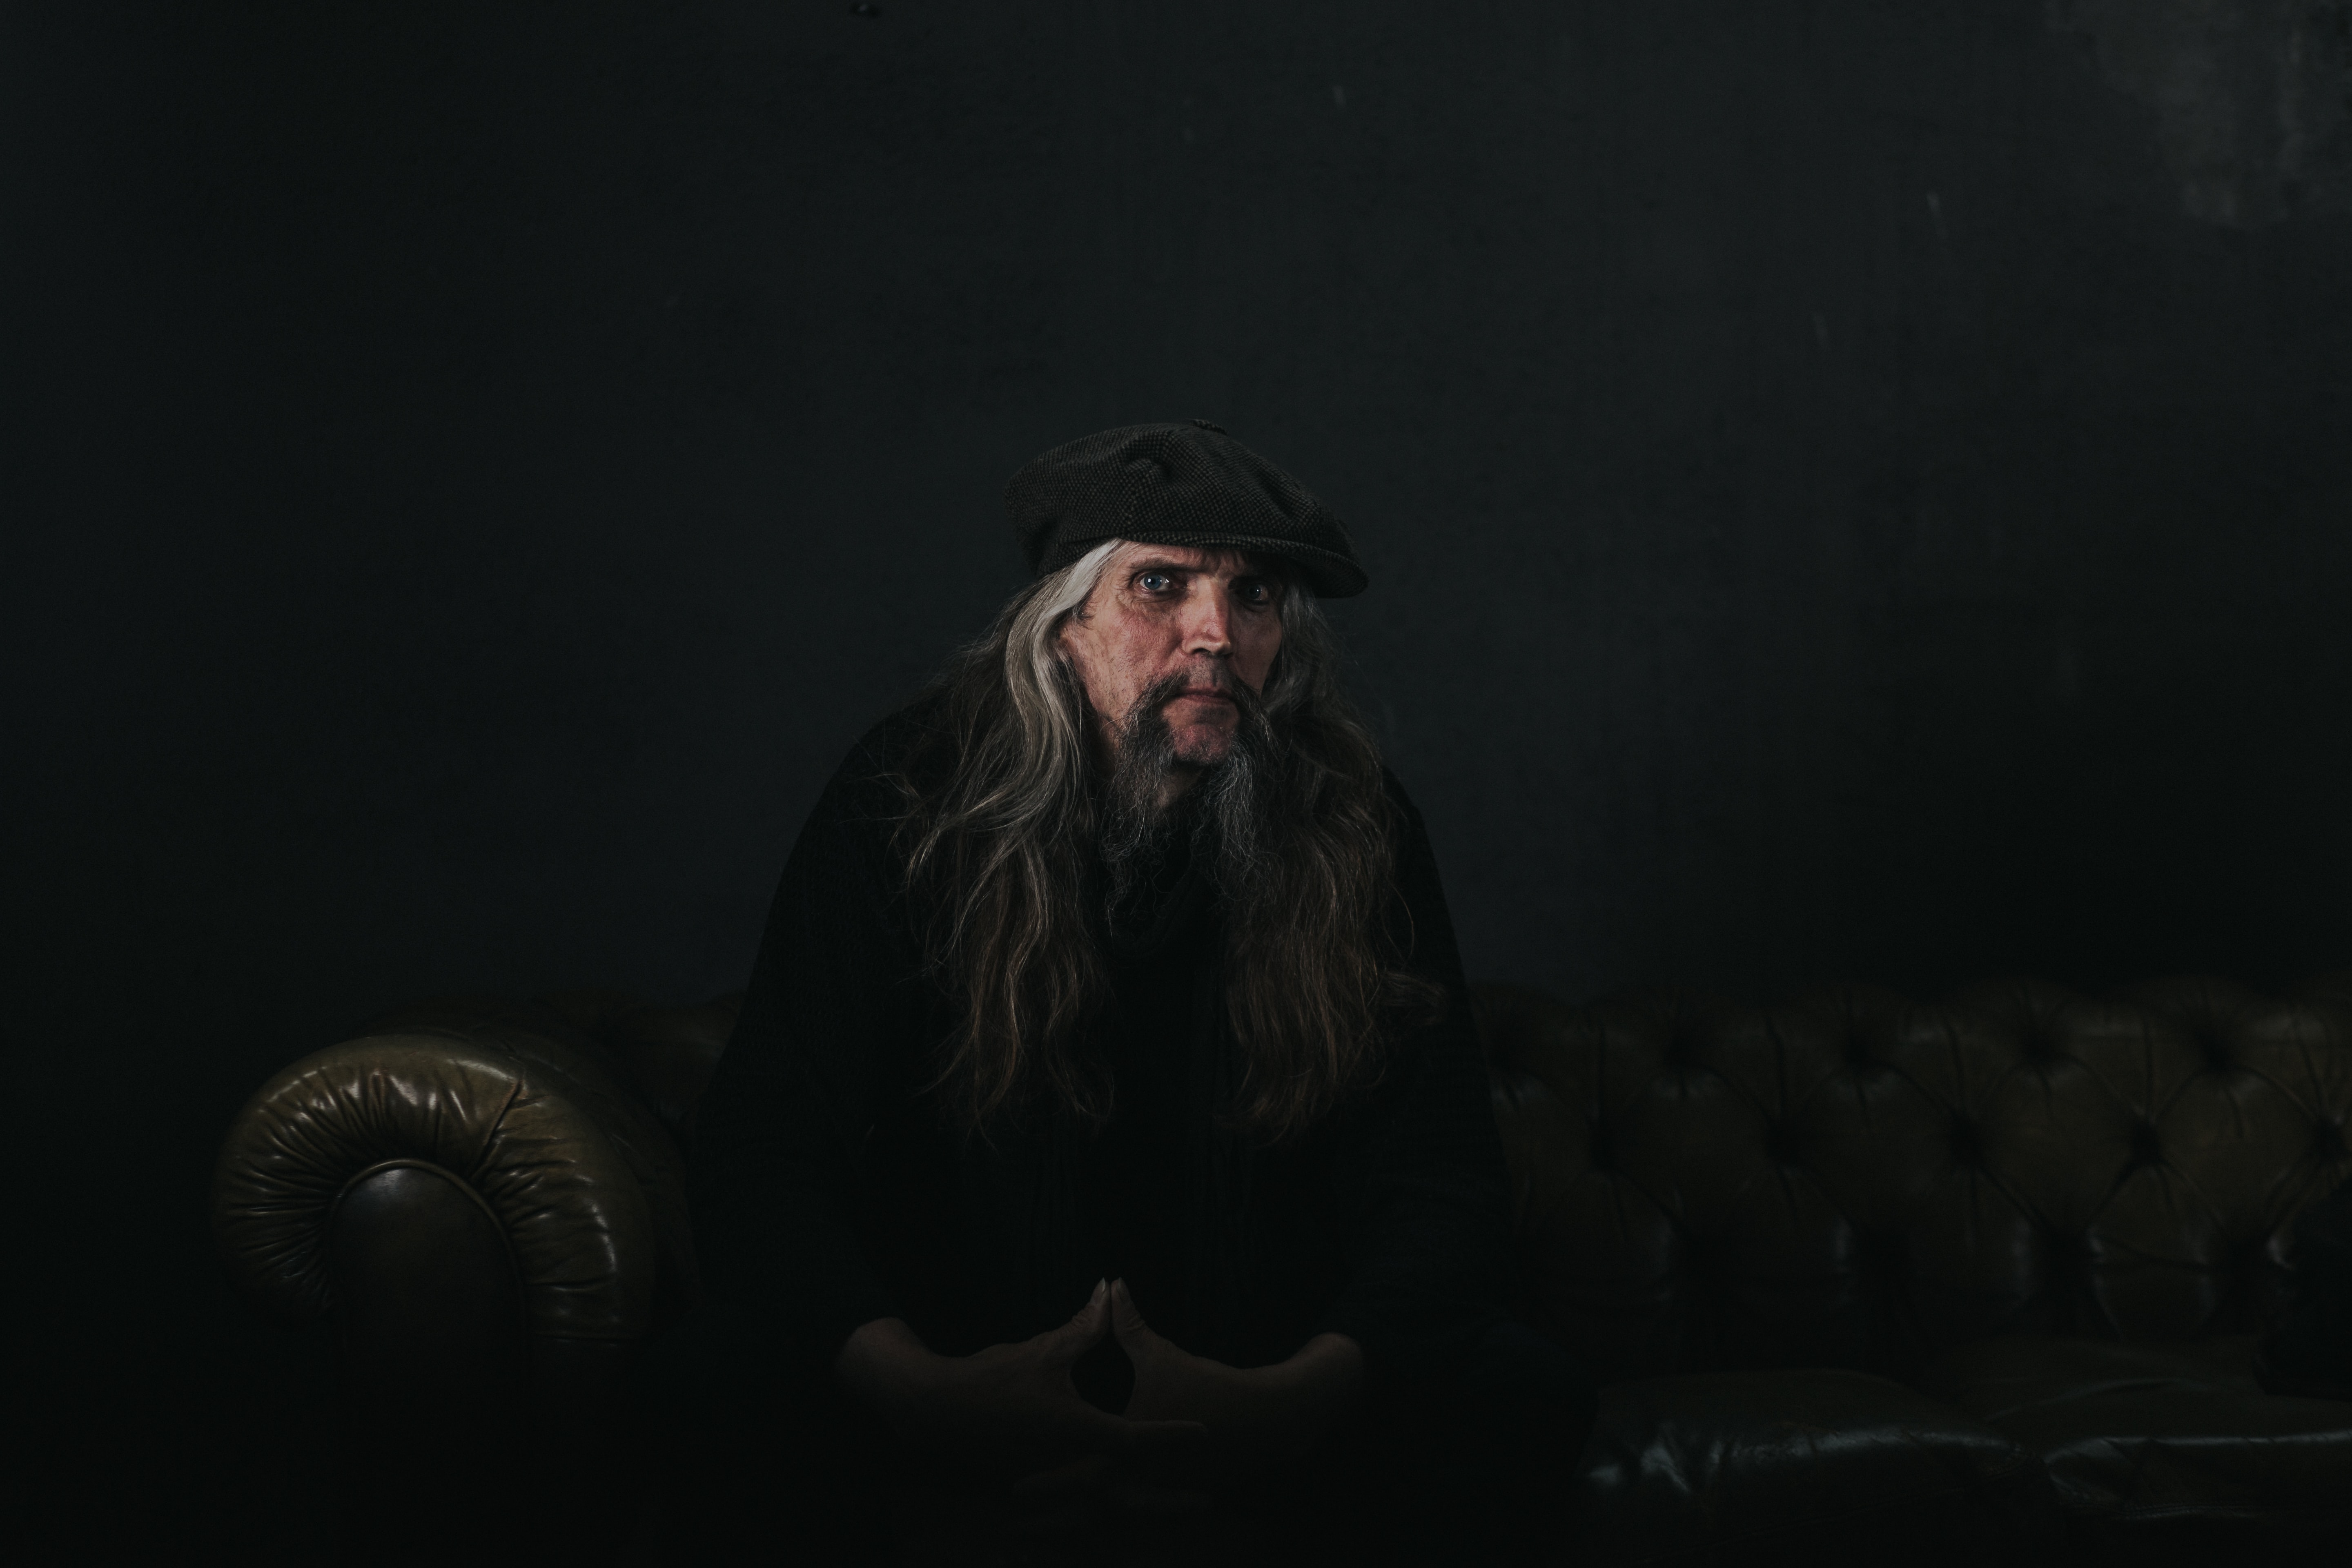 A man with long gray hair sits on a couch against a black background